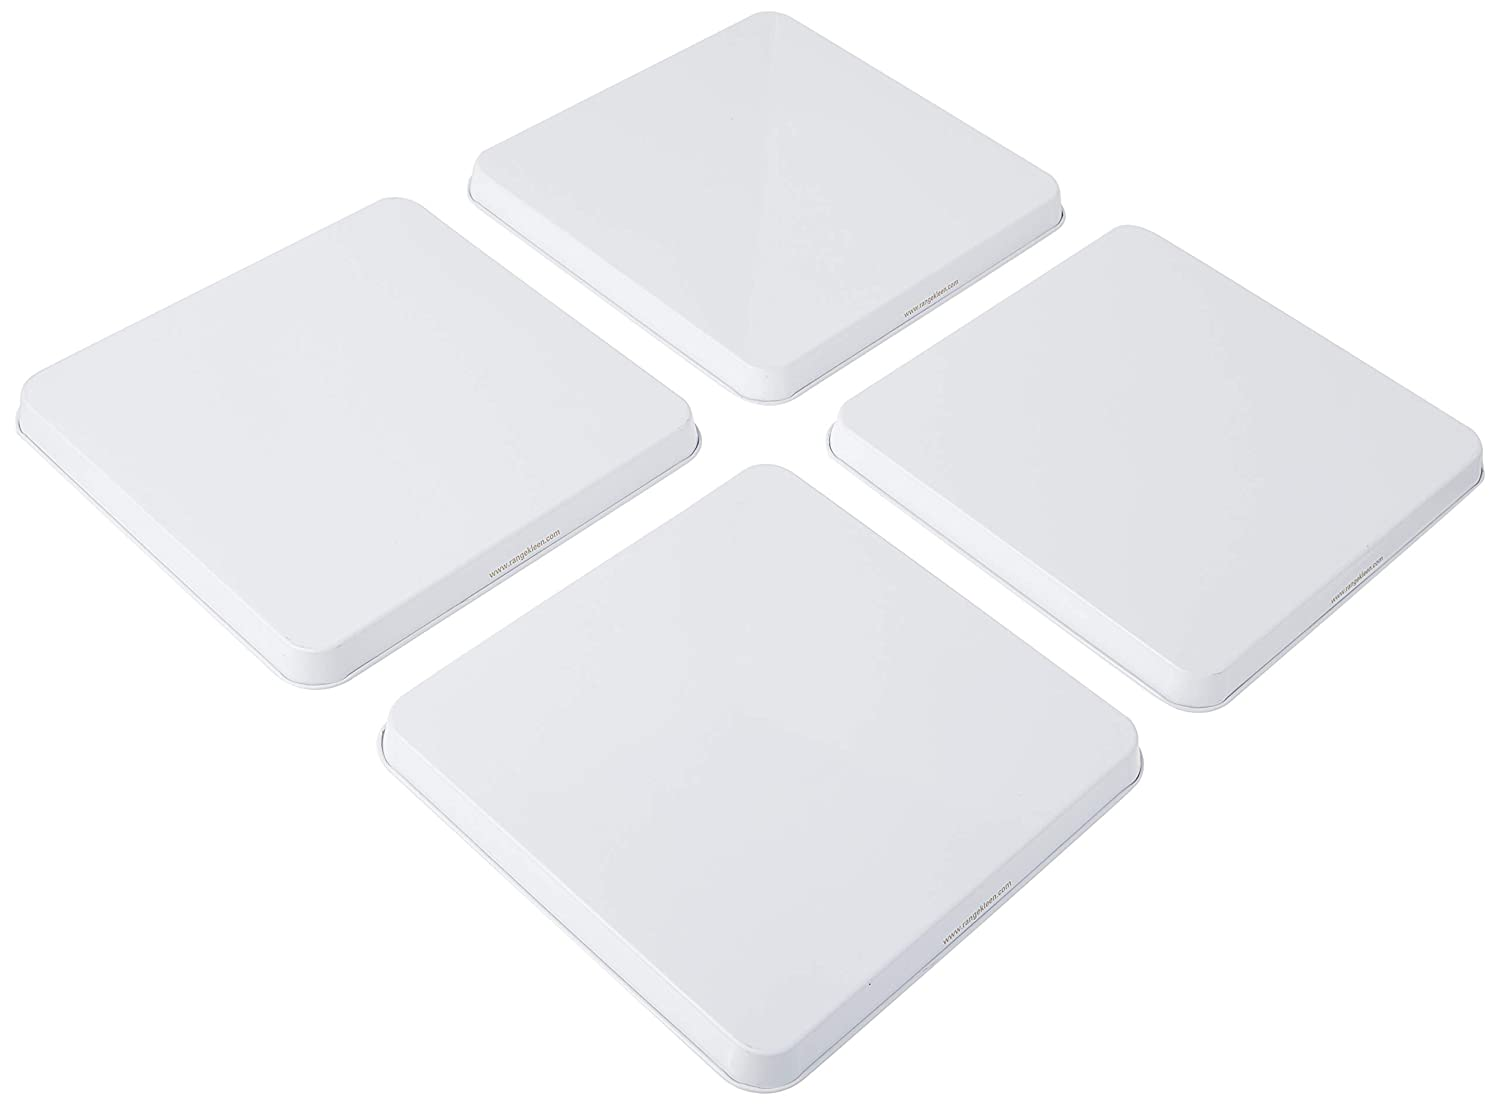 "Range Kleen Stove Burner Covers – 4 White 9.5"" Square Burner Covers for Electric Stove"